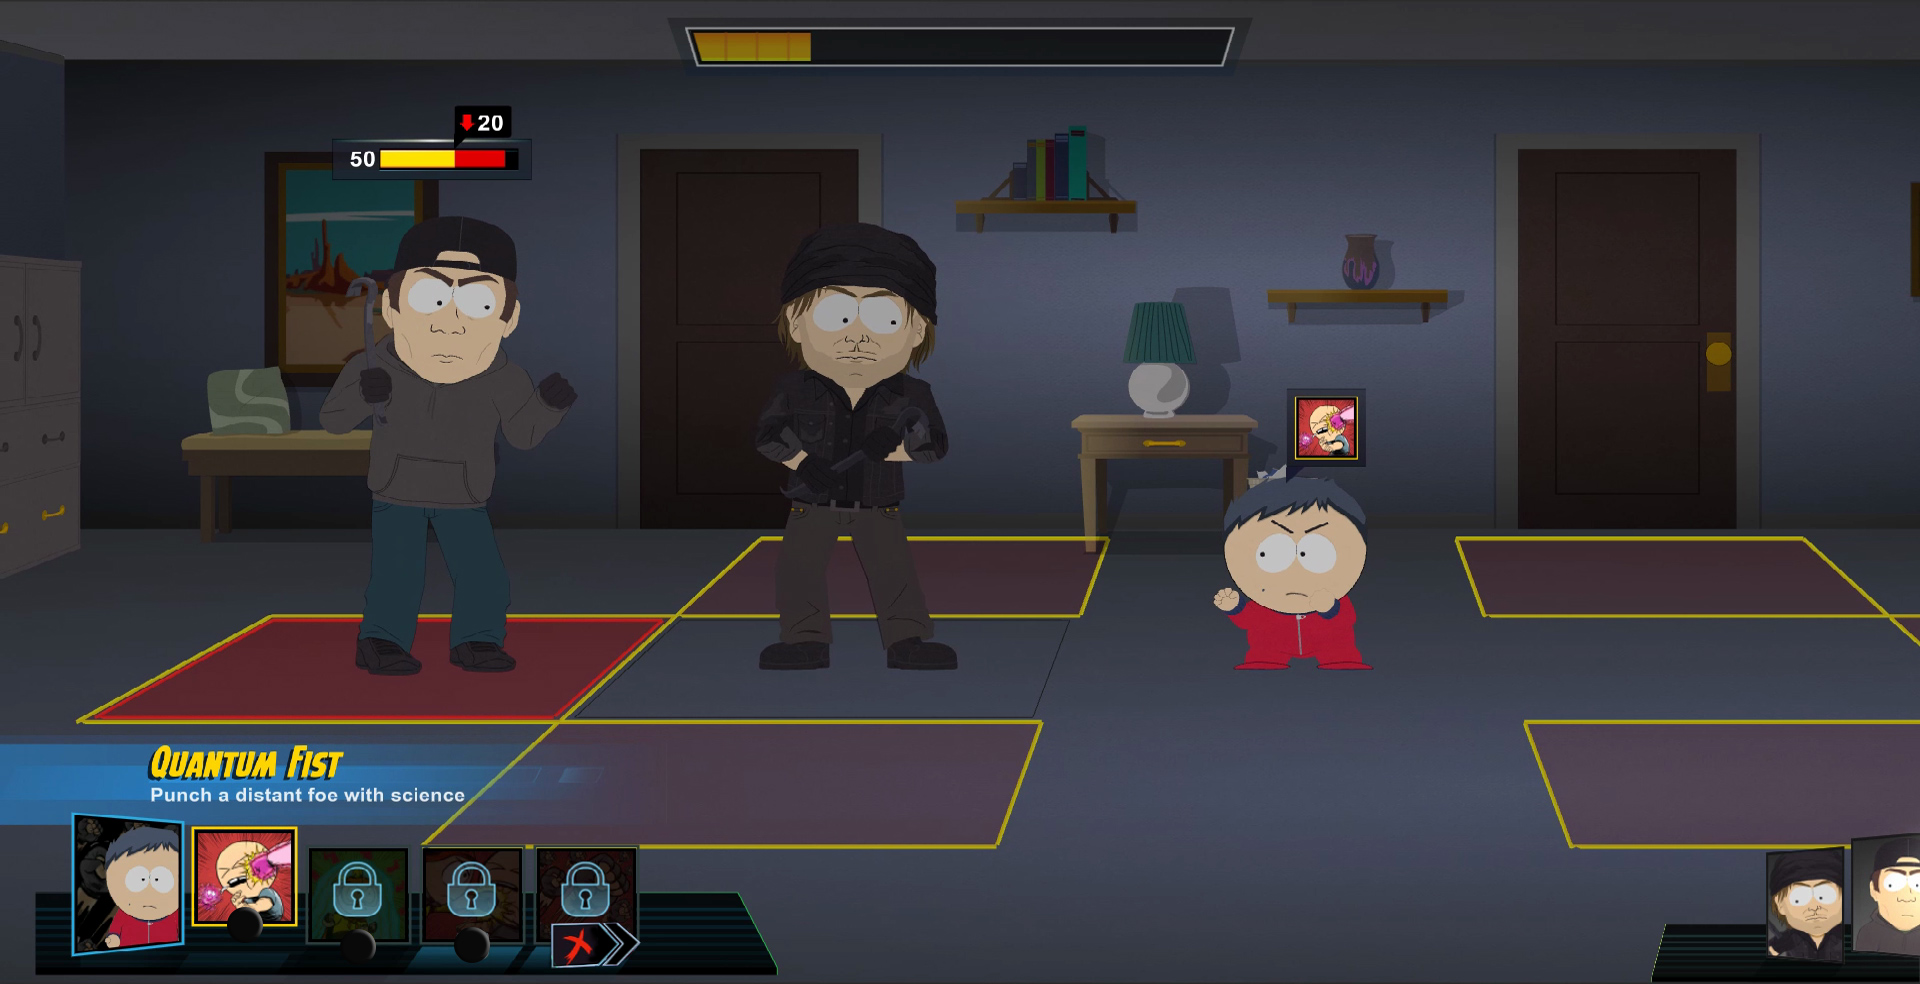 South-Park-The-Fractured-But-Whole-screenshot-44